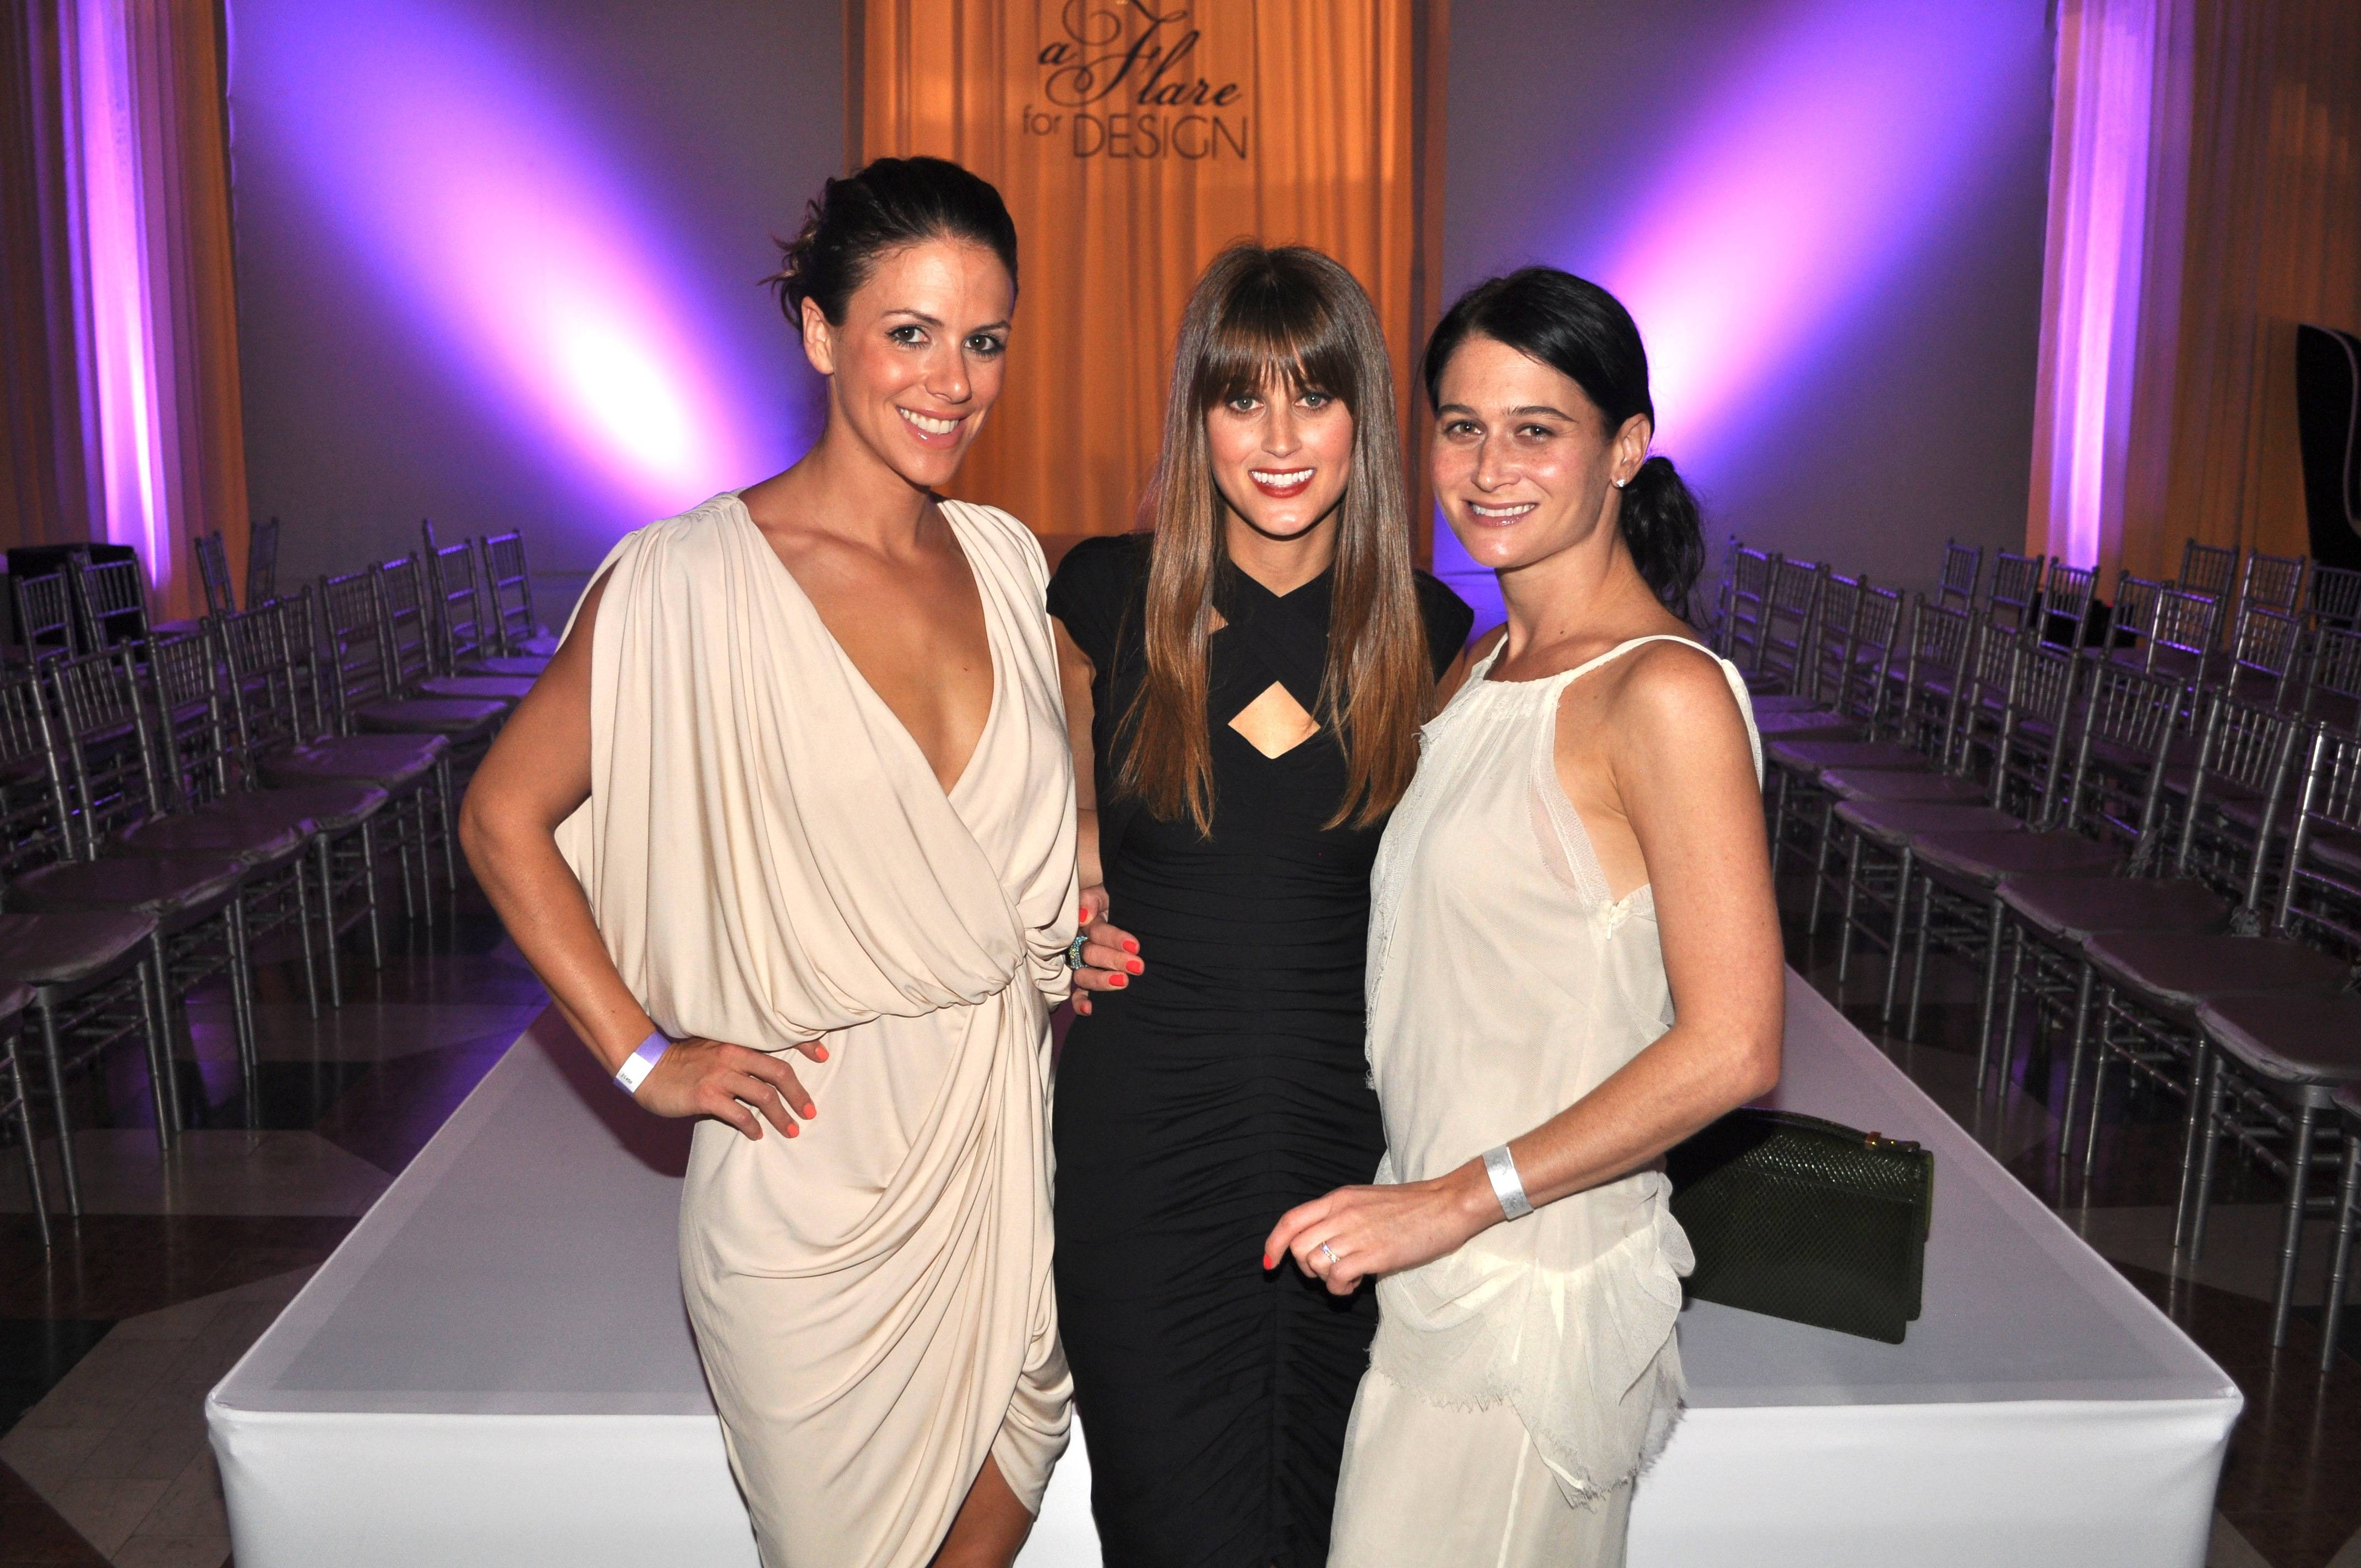 Sloane Sappan, Jenny Wilensky and Dina Friedman